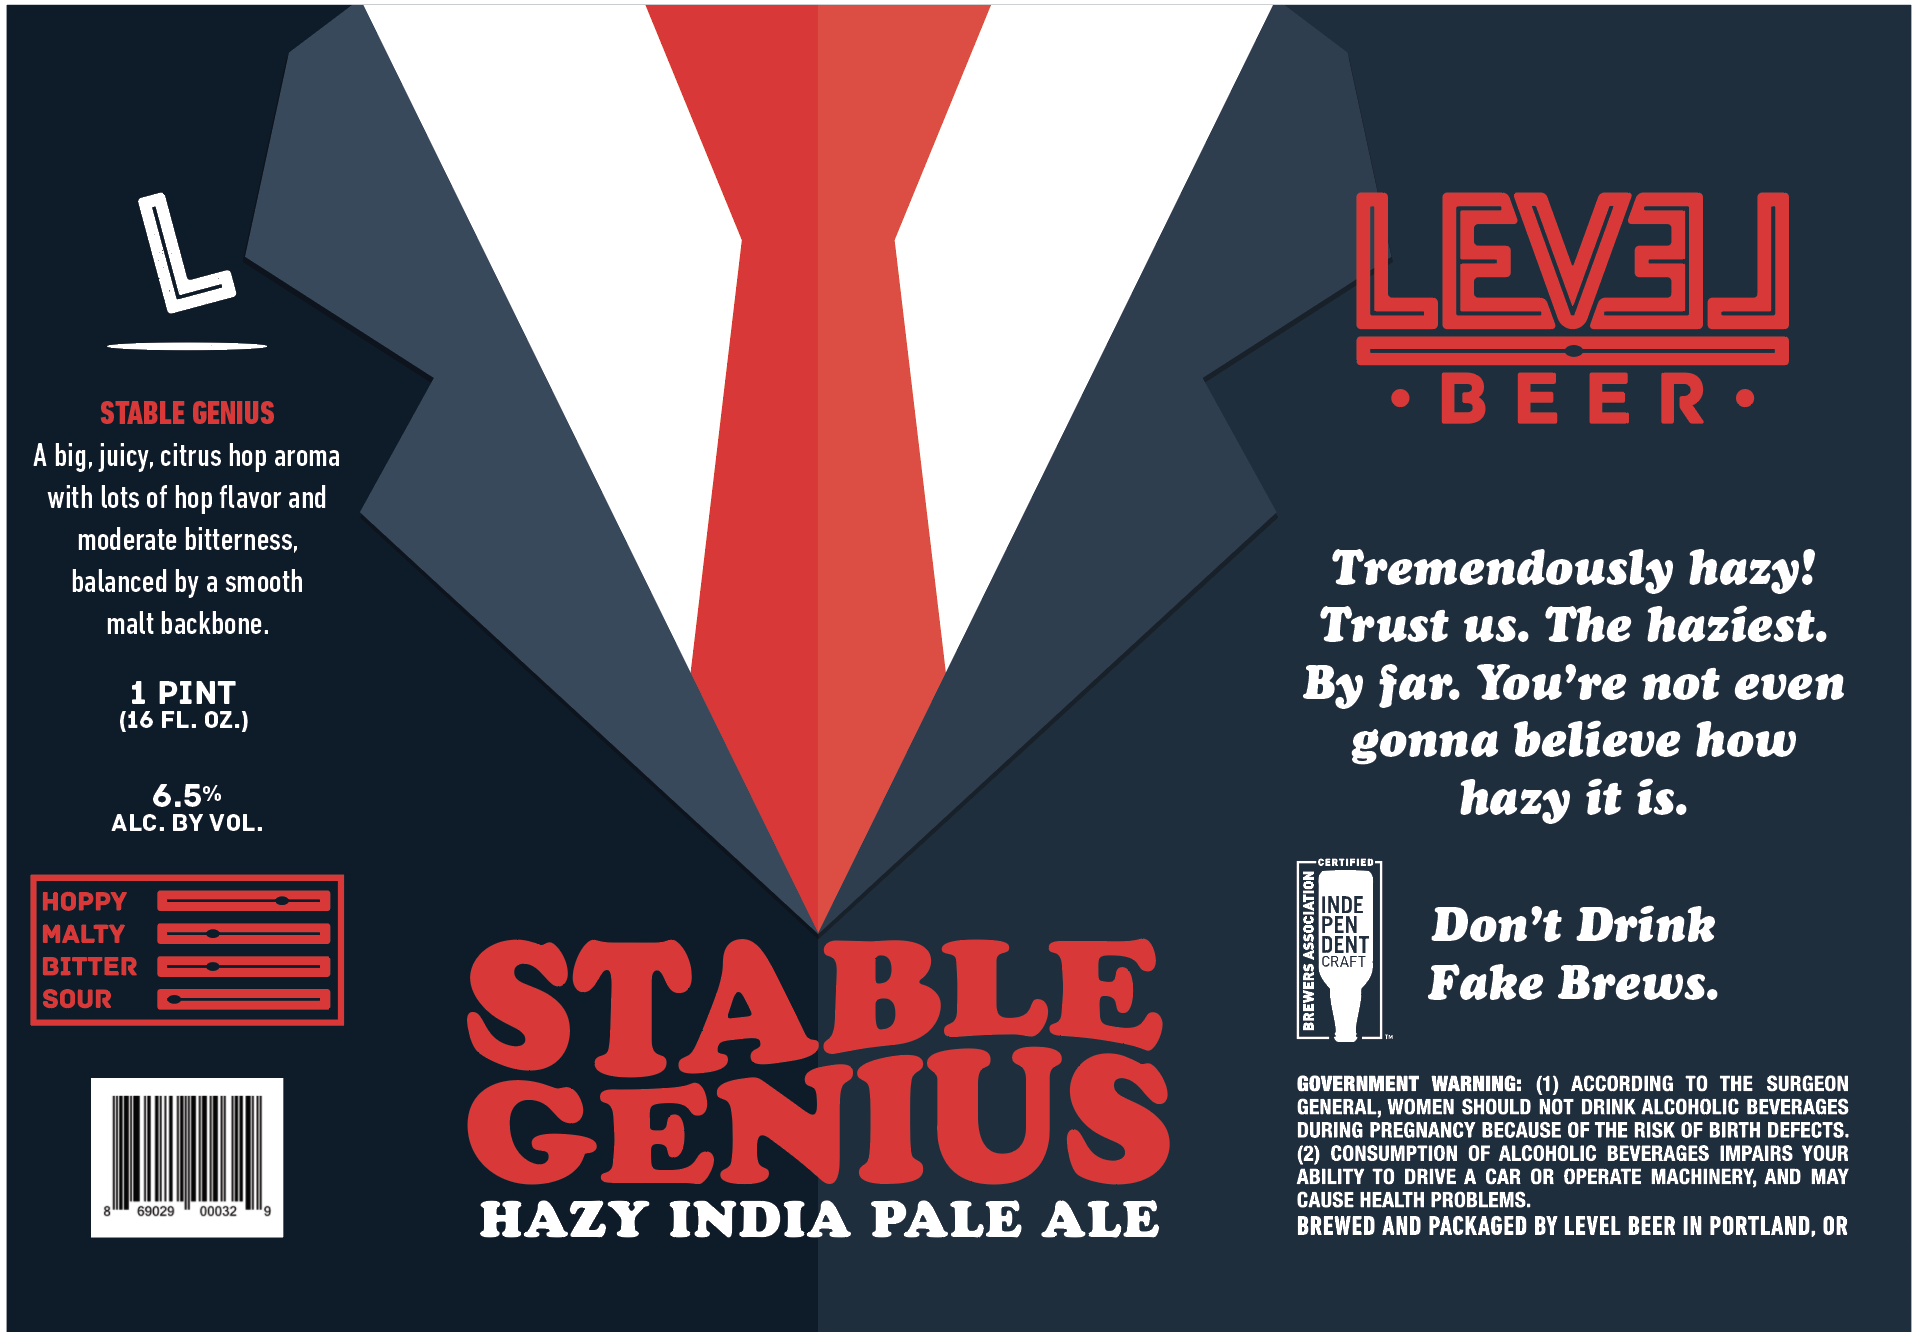 Level Beer Releases Stable Genius Hazy Ipa On Easter Sunday